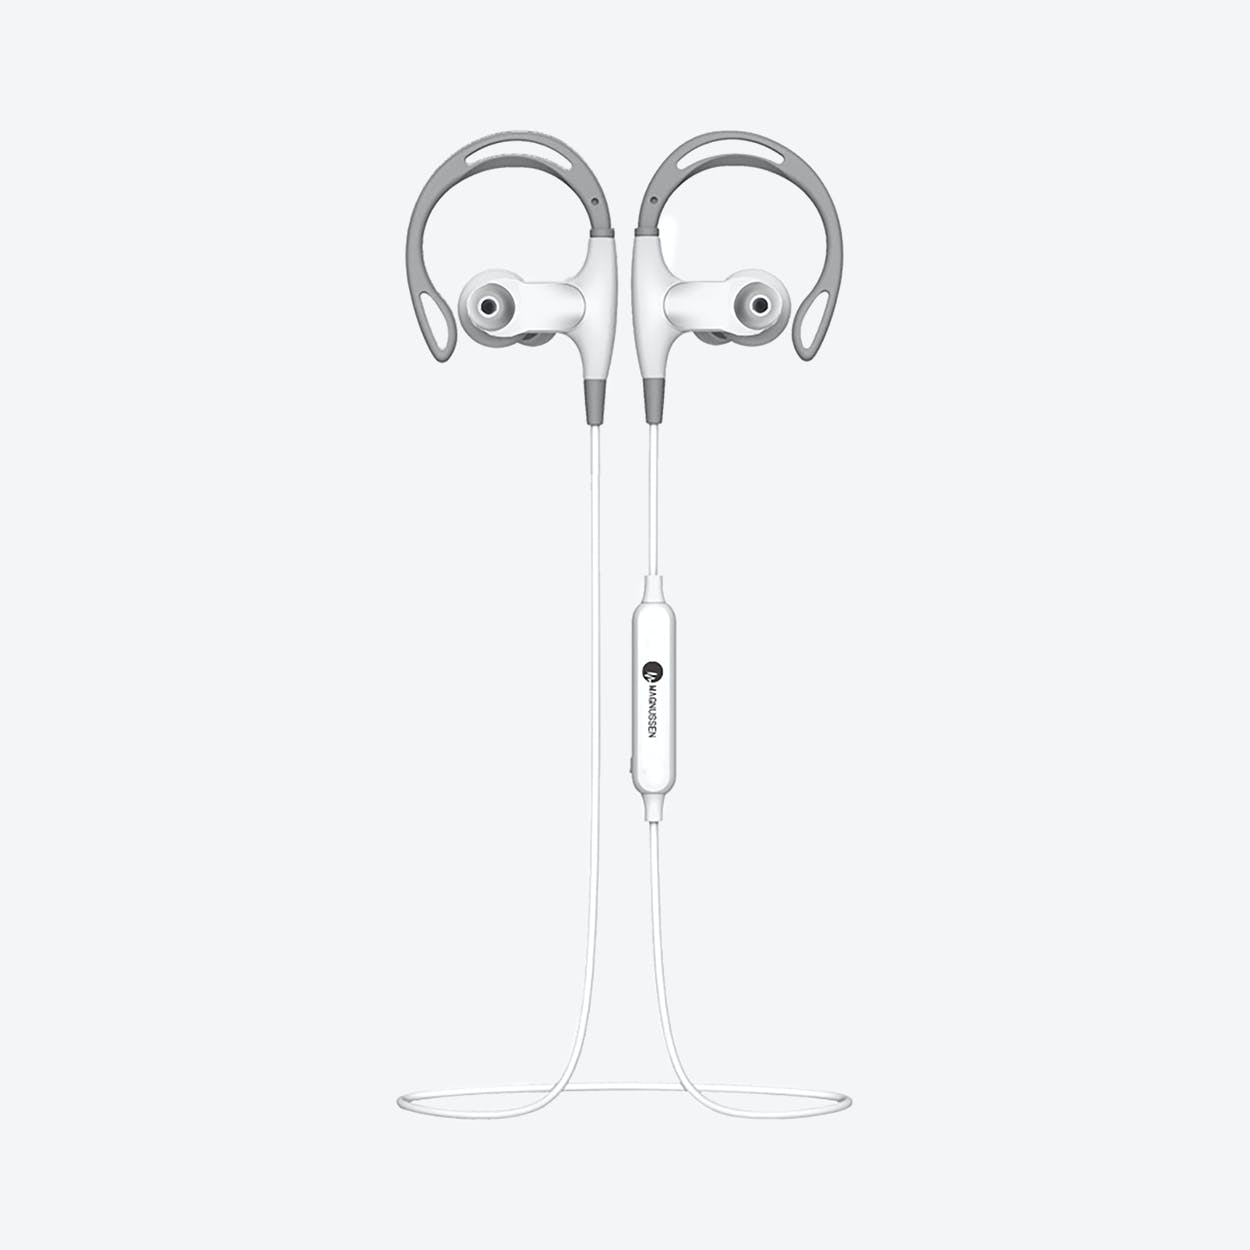 MAGNUSSEN M8 Bluetooth Wireless Earphones in White